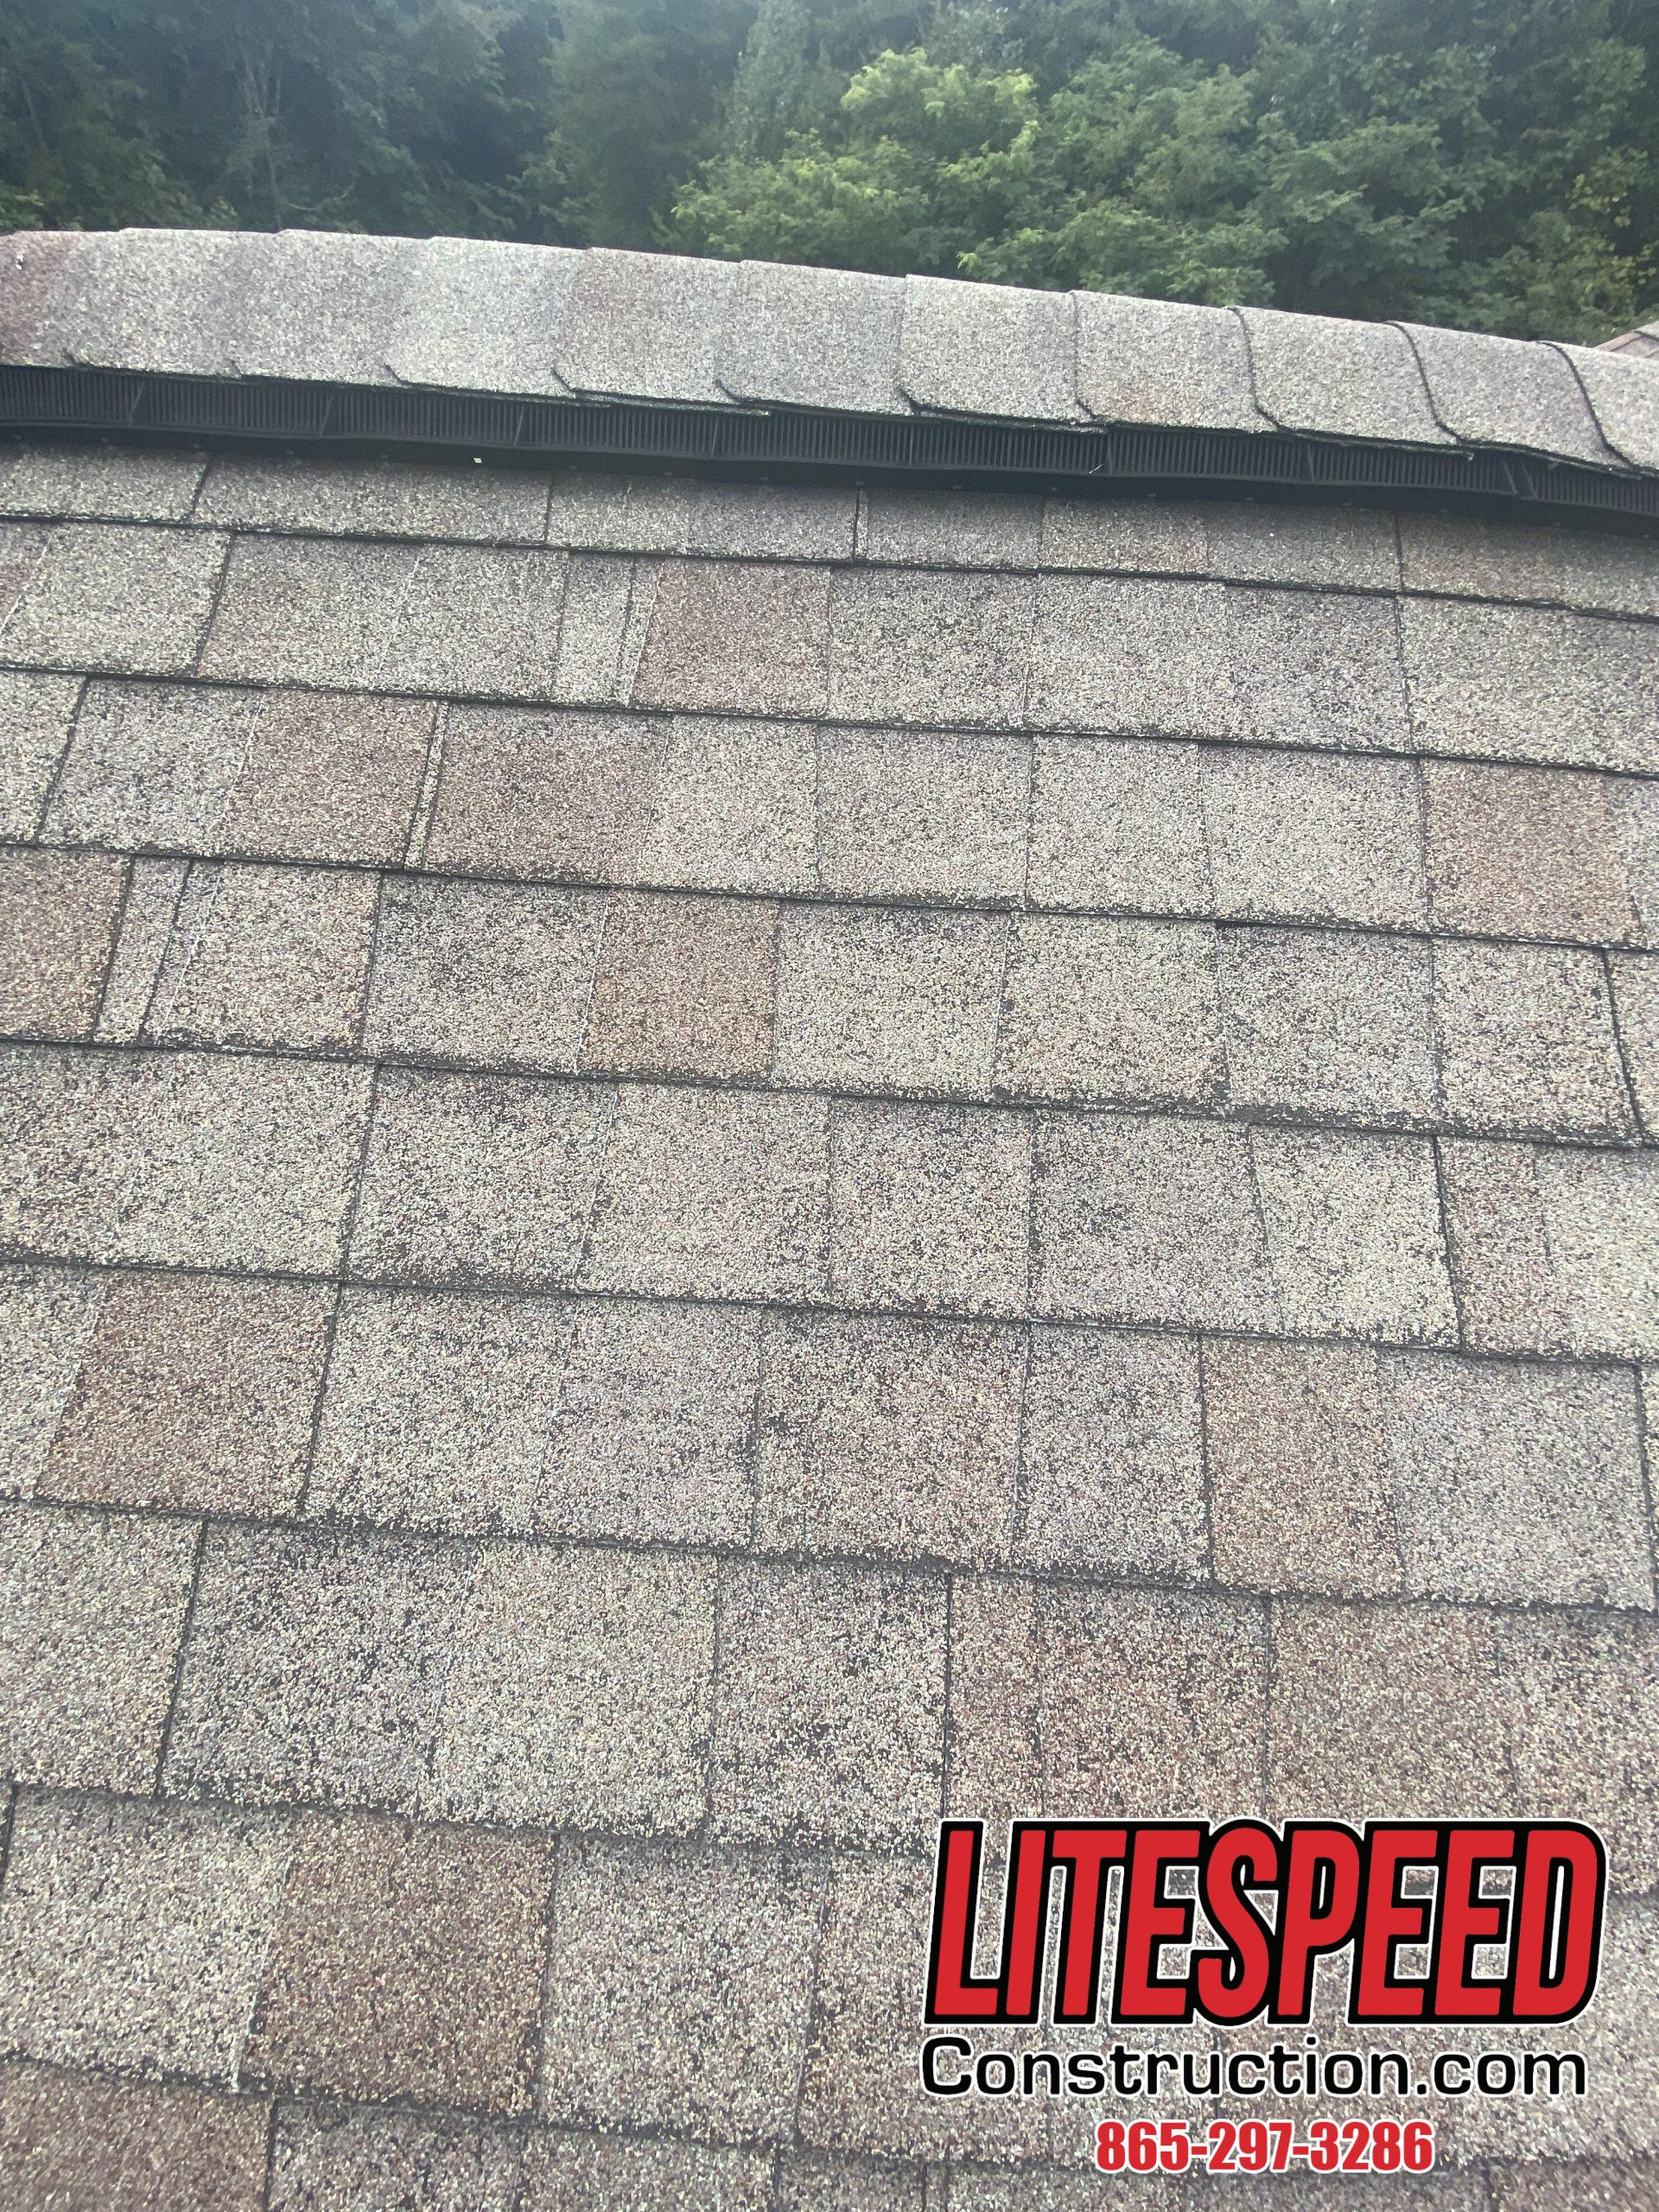 This is a picture of shingles that have been installed correctly